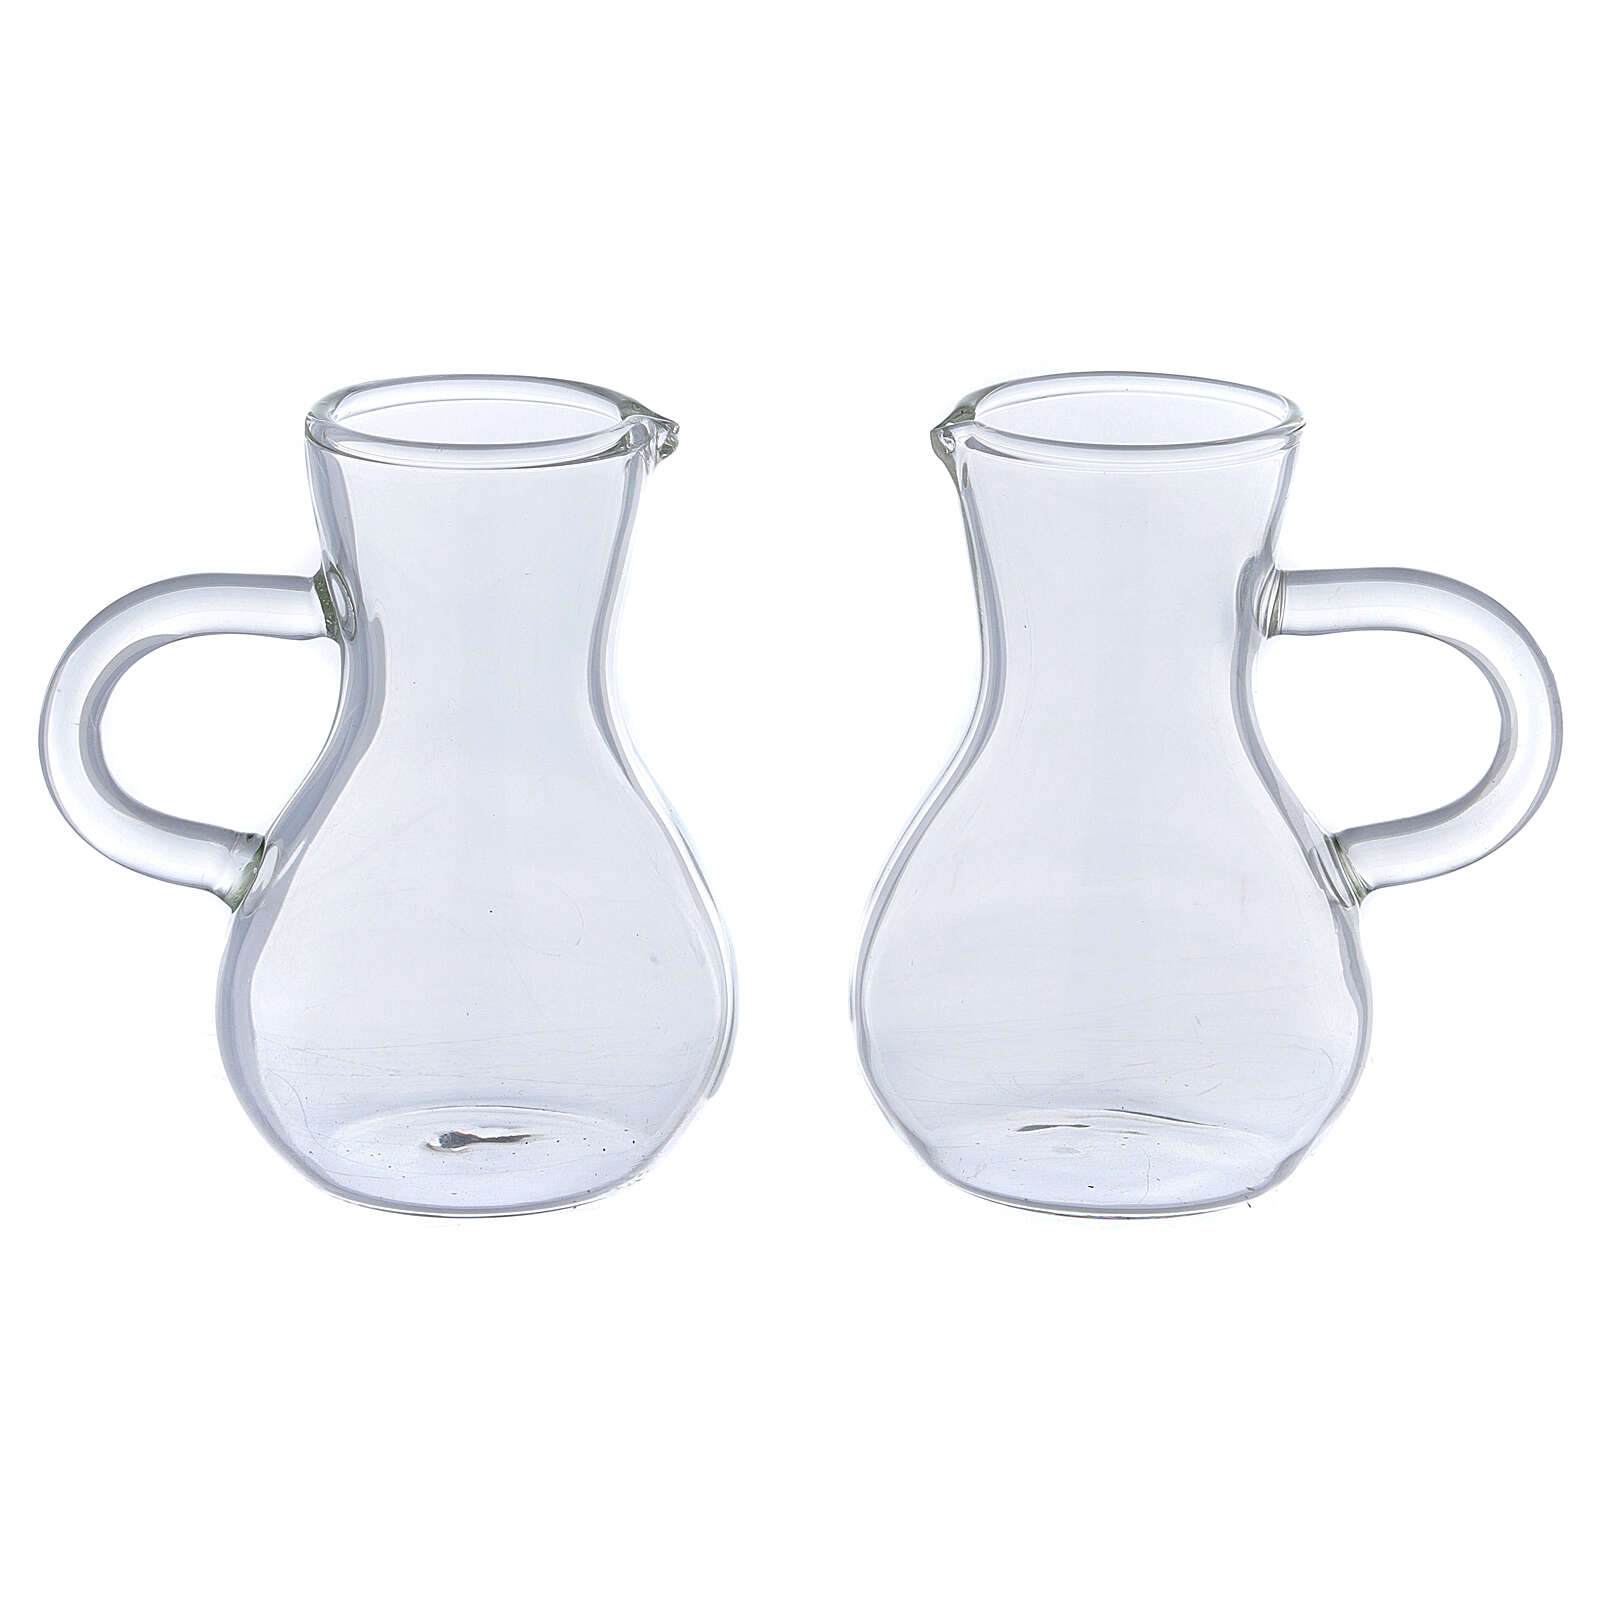 Ewer in glass thick handles 75 ml, 2 pcs 4